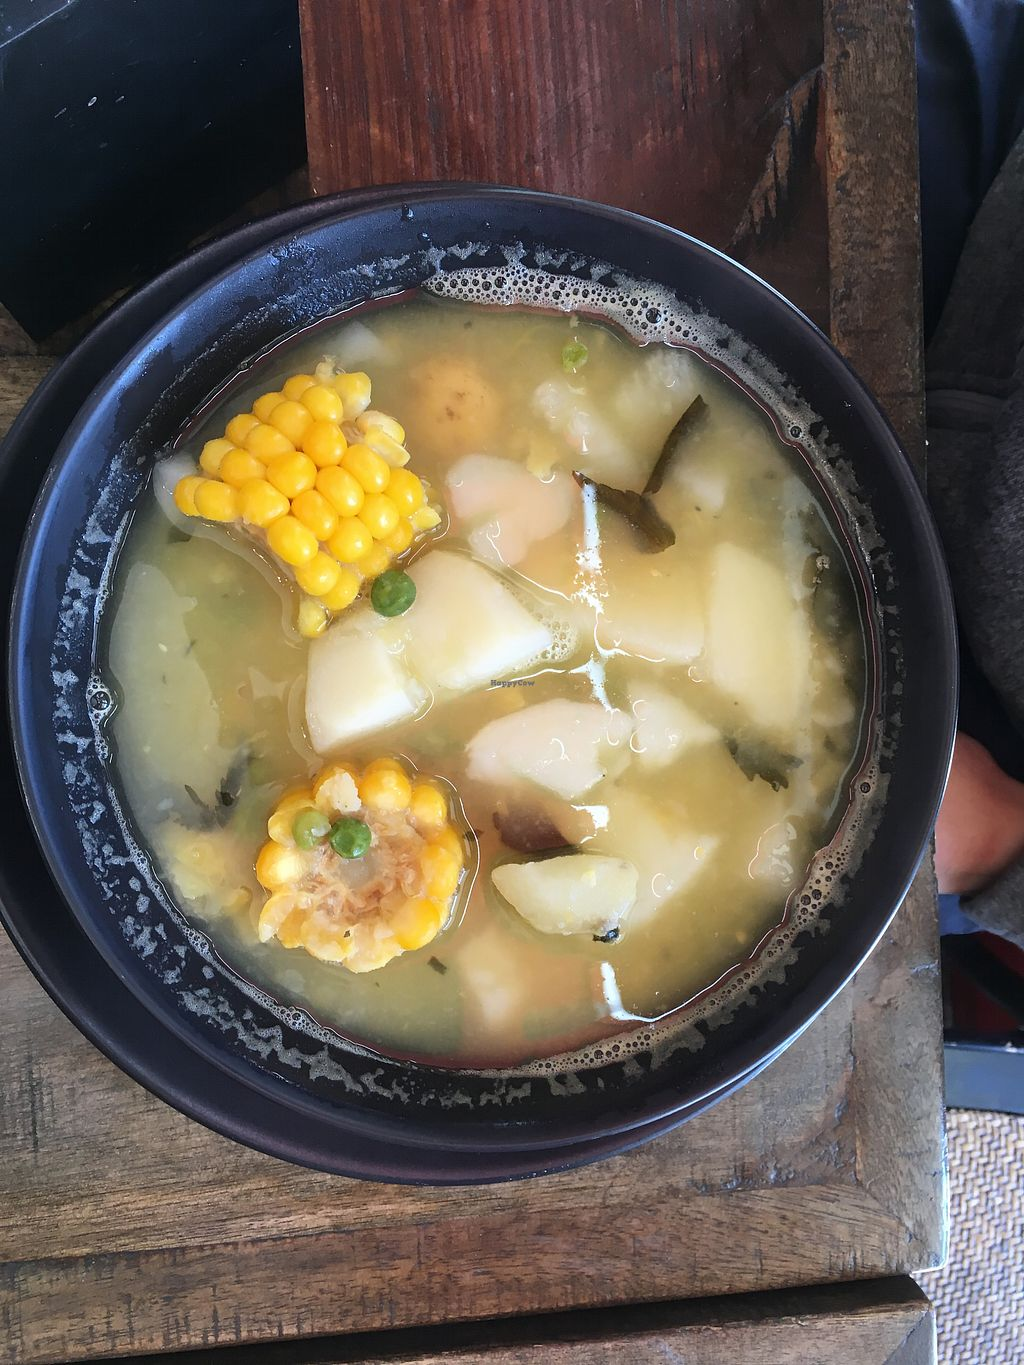 """Photo of ExotiK  by <a href=""""/members/profile/chapstick"""">chapstick</a> <br/>Ajiaco, a Colombian soup. Comes with a side place of rice, avocado and a small bowl of capers.  <br/> July 30, 2017  - <a href='/contact/abuse/image/66169/286570'>Report</a>"""